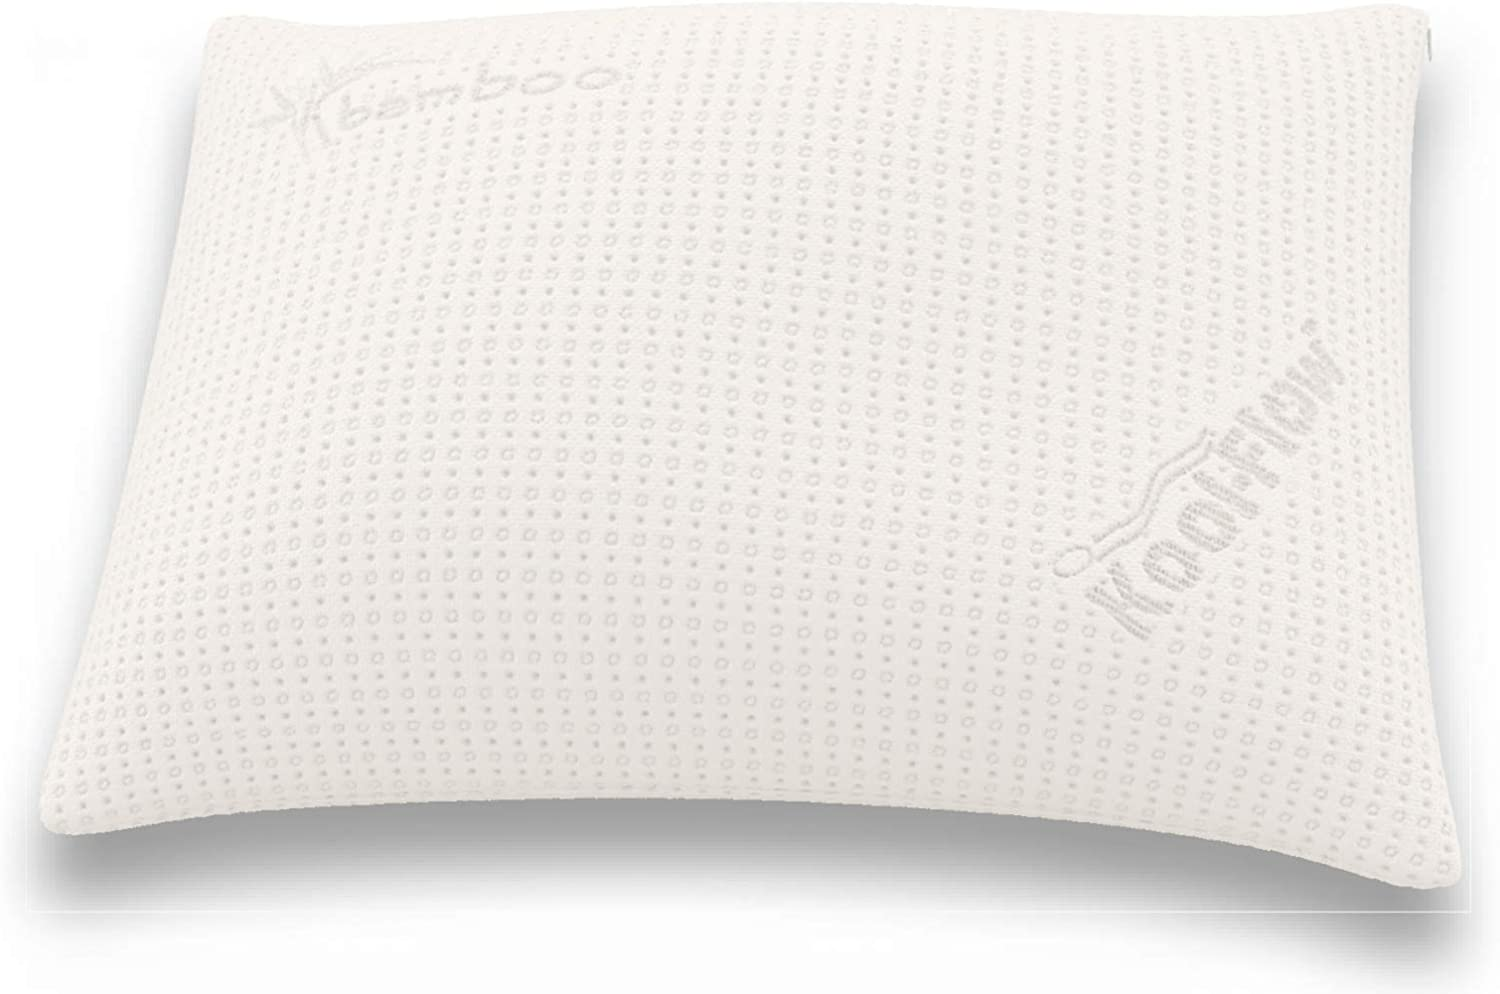 Snuggle-Pedic Supreme Plush Ultra-Luxury Hypoallergenic Bamboo Shredded Gel-Infused Memory Foam Pillow Combination with Adjustable Fit & Zipper Removable Kool-Flow Cooling Pillow Cover (Standard)